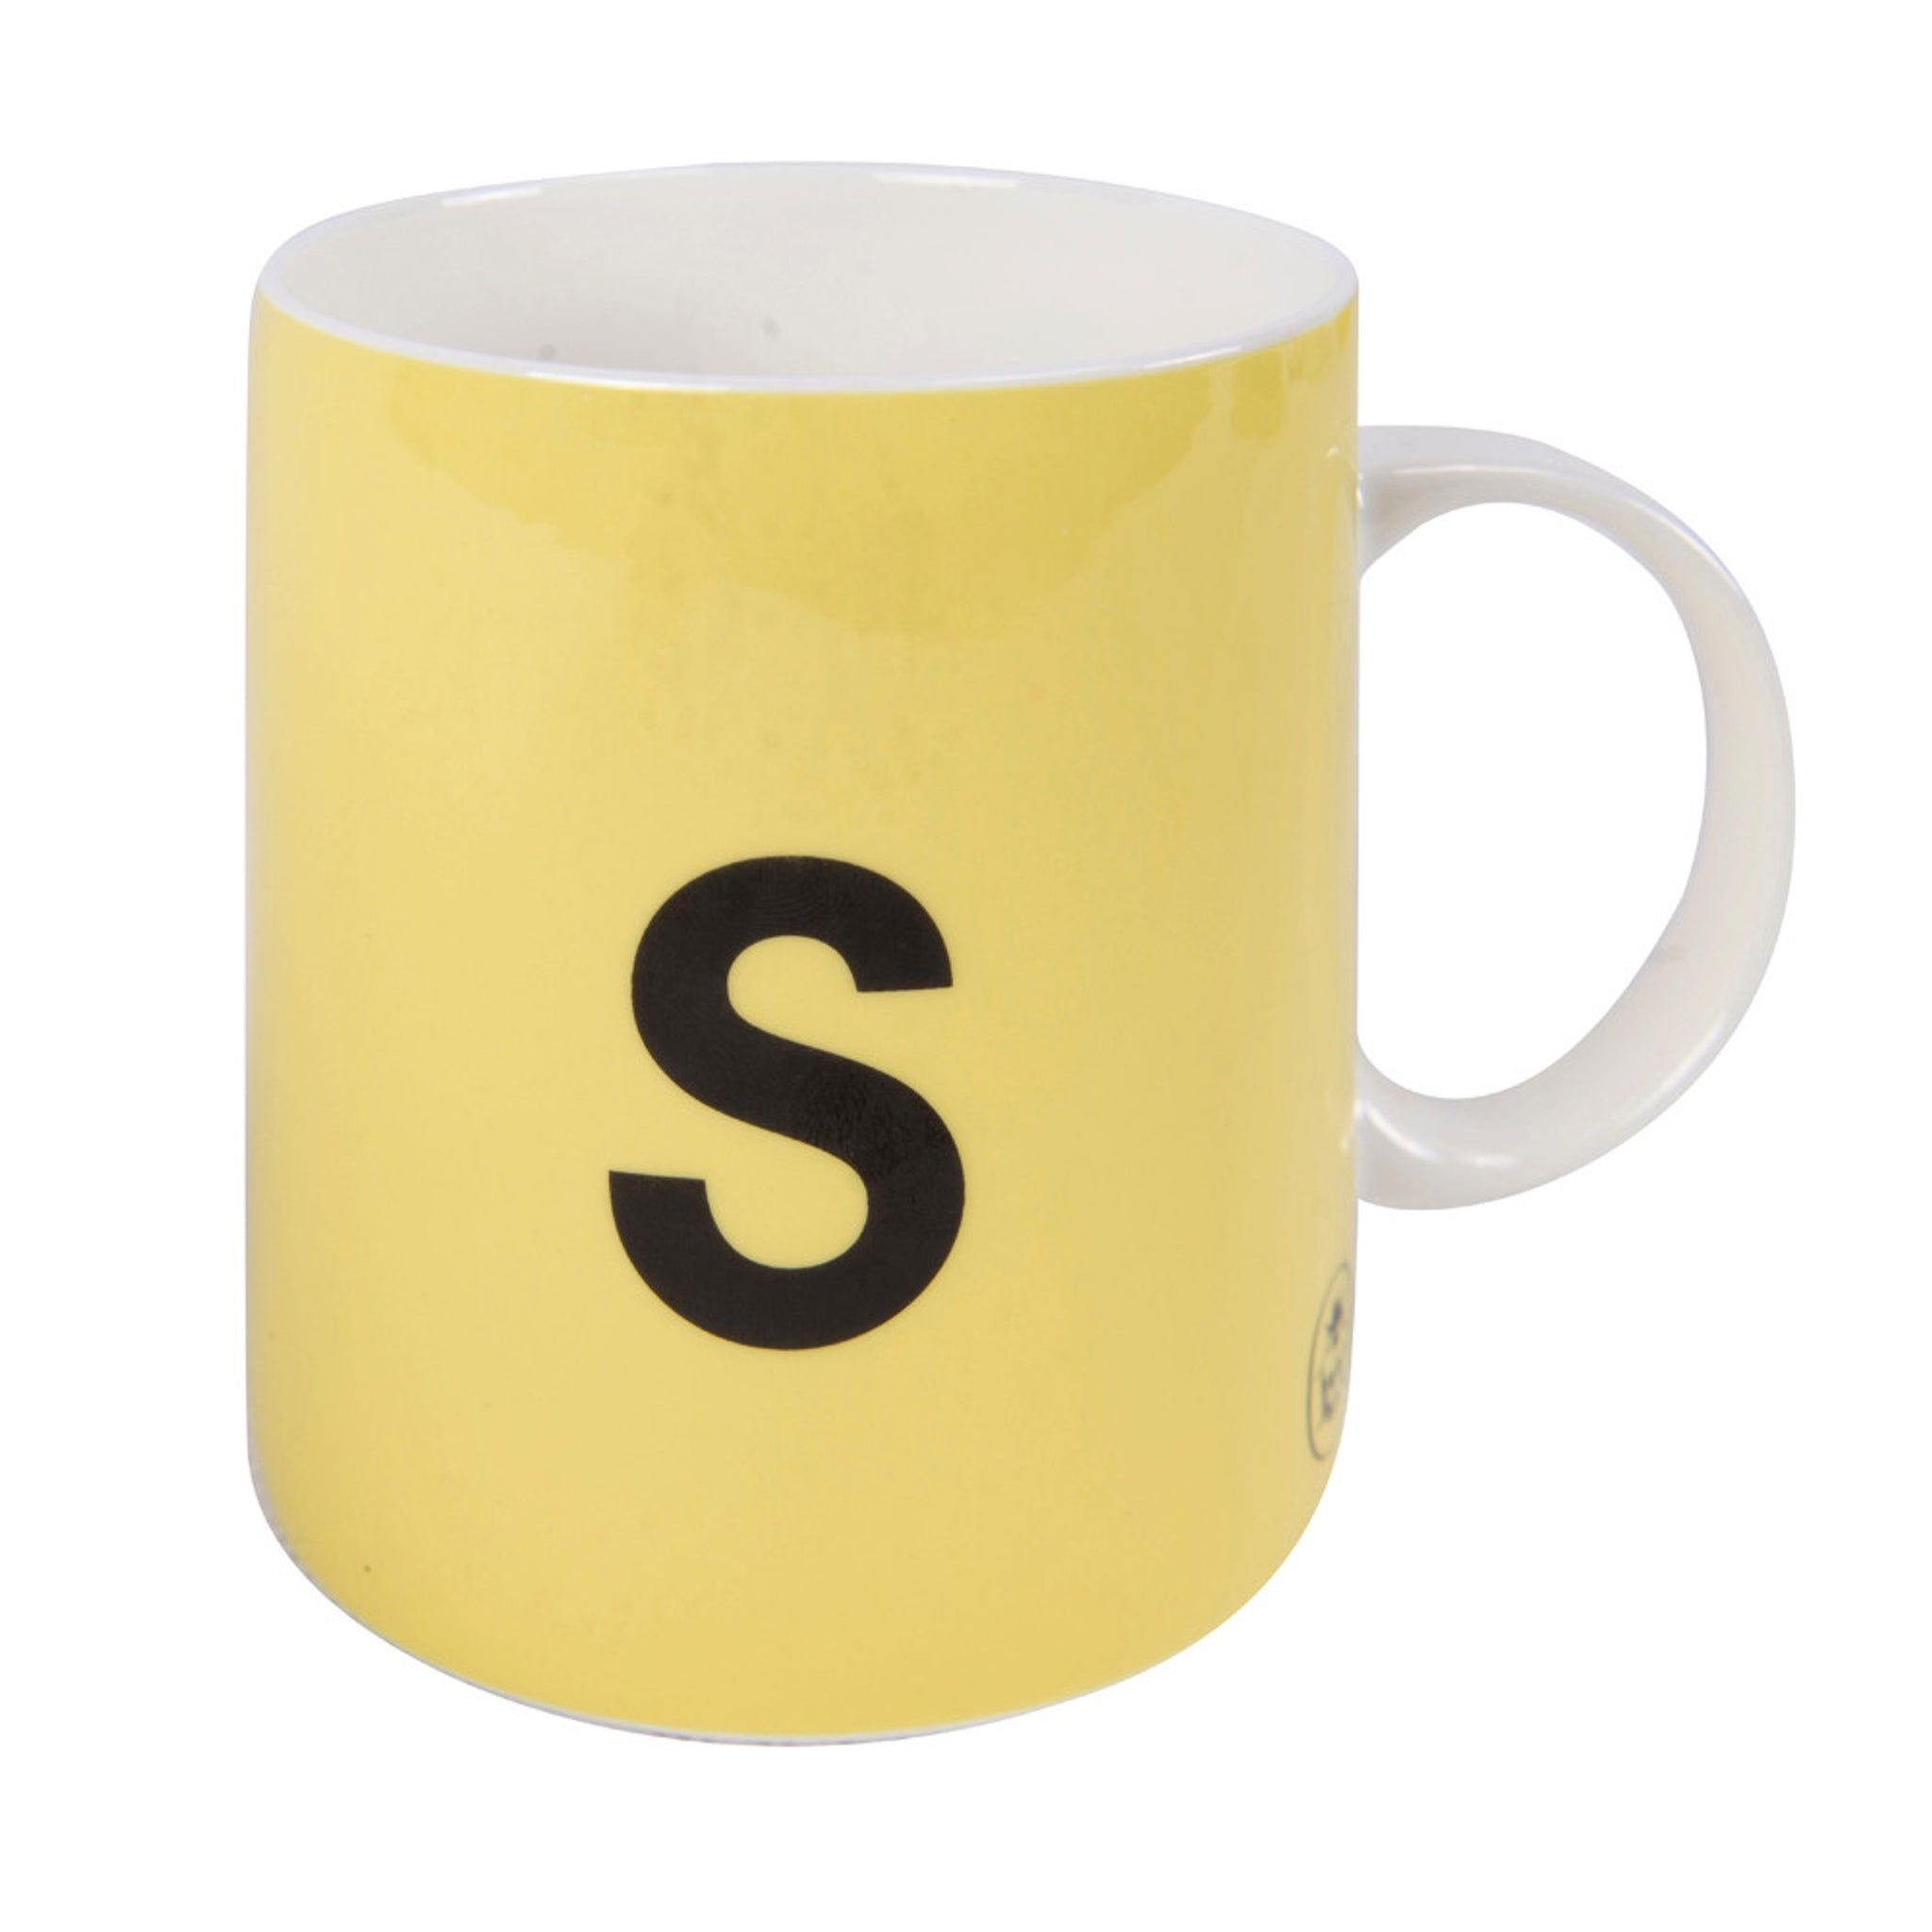 Vintage Ladybird Mug = S is for Spoon